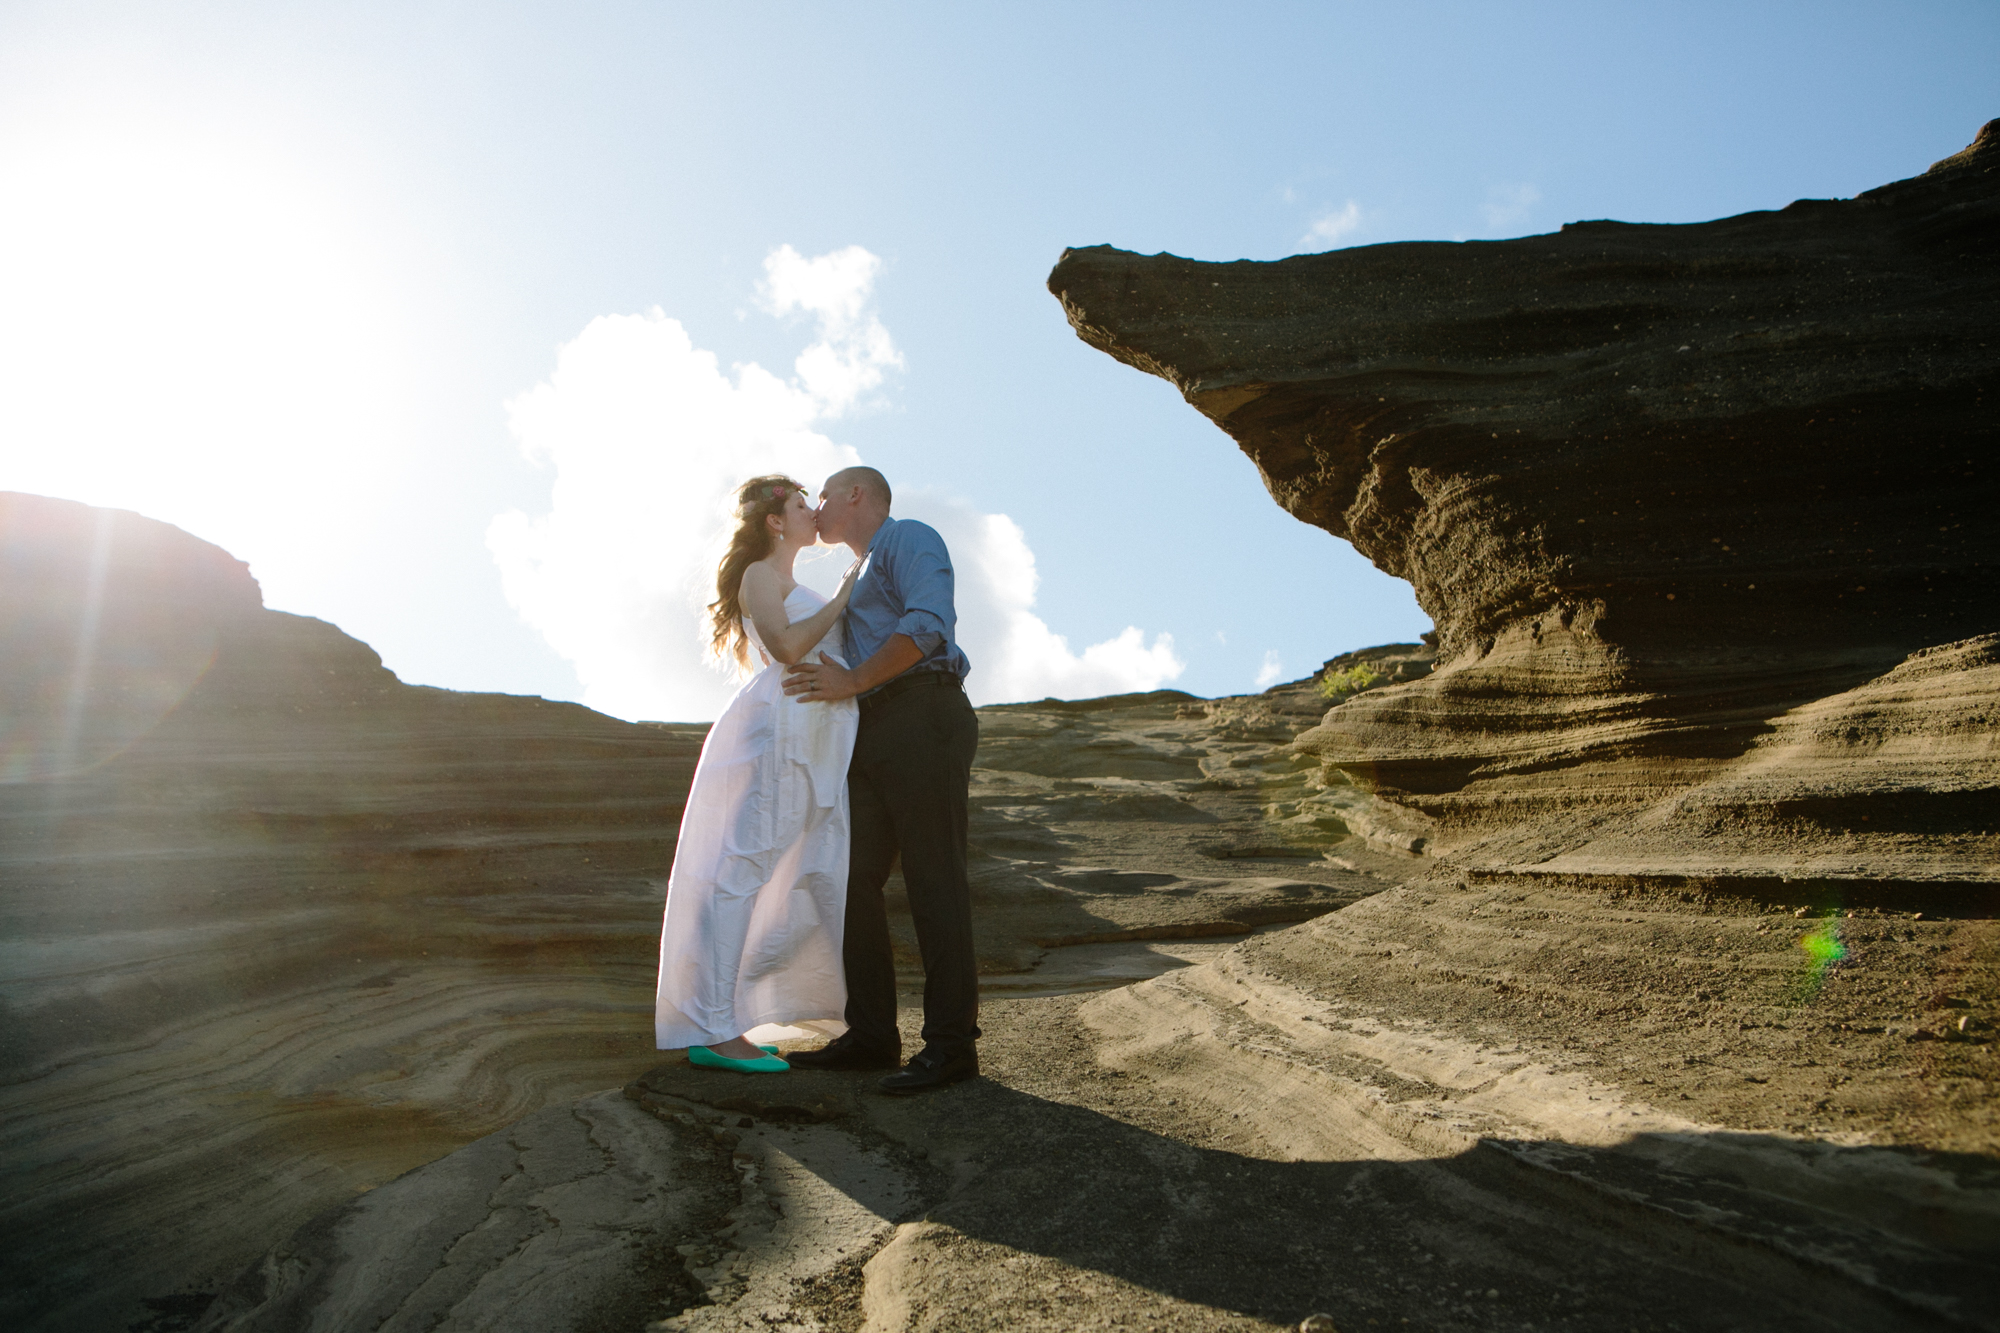 Oahu Wedding Photographer- Hawaii Destination Wedding- kahauloa cove- Grace and Jaden Hurtienne Photography (8).jpg